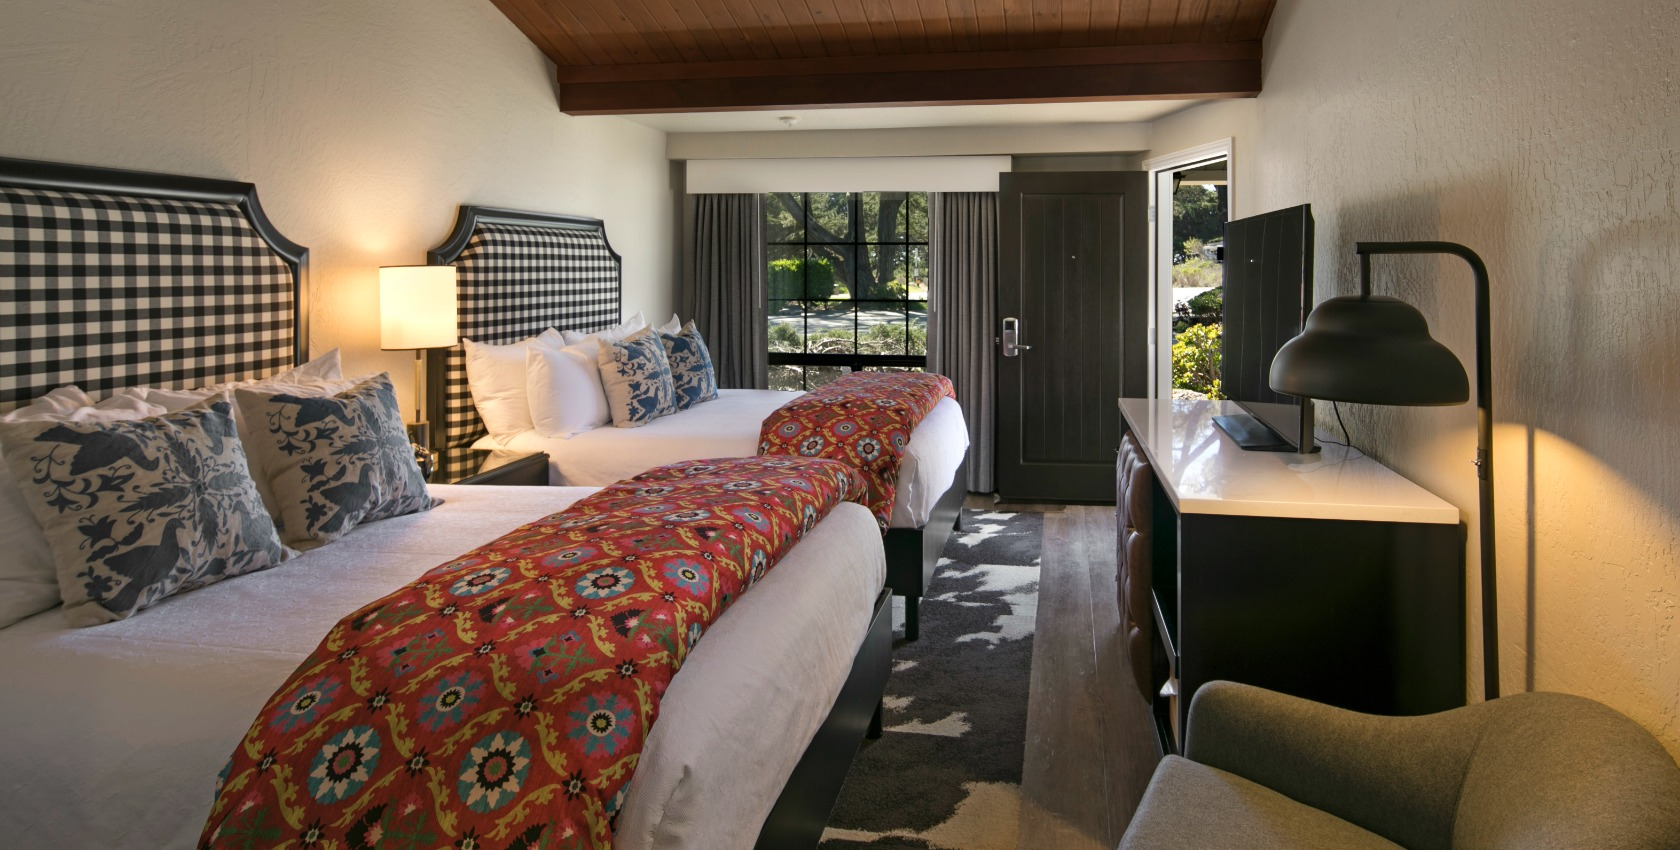 cambria_ca_hotel_rooms_1 (1).jpg